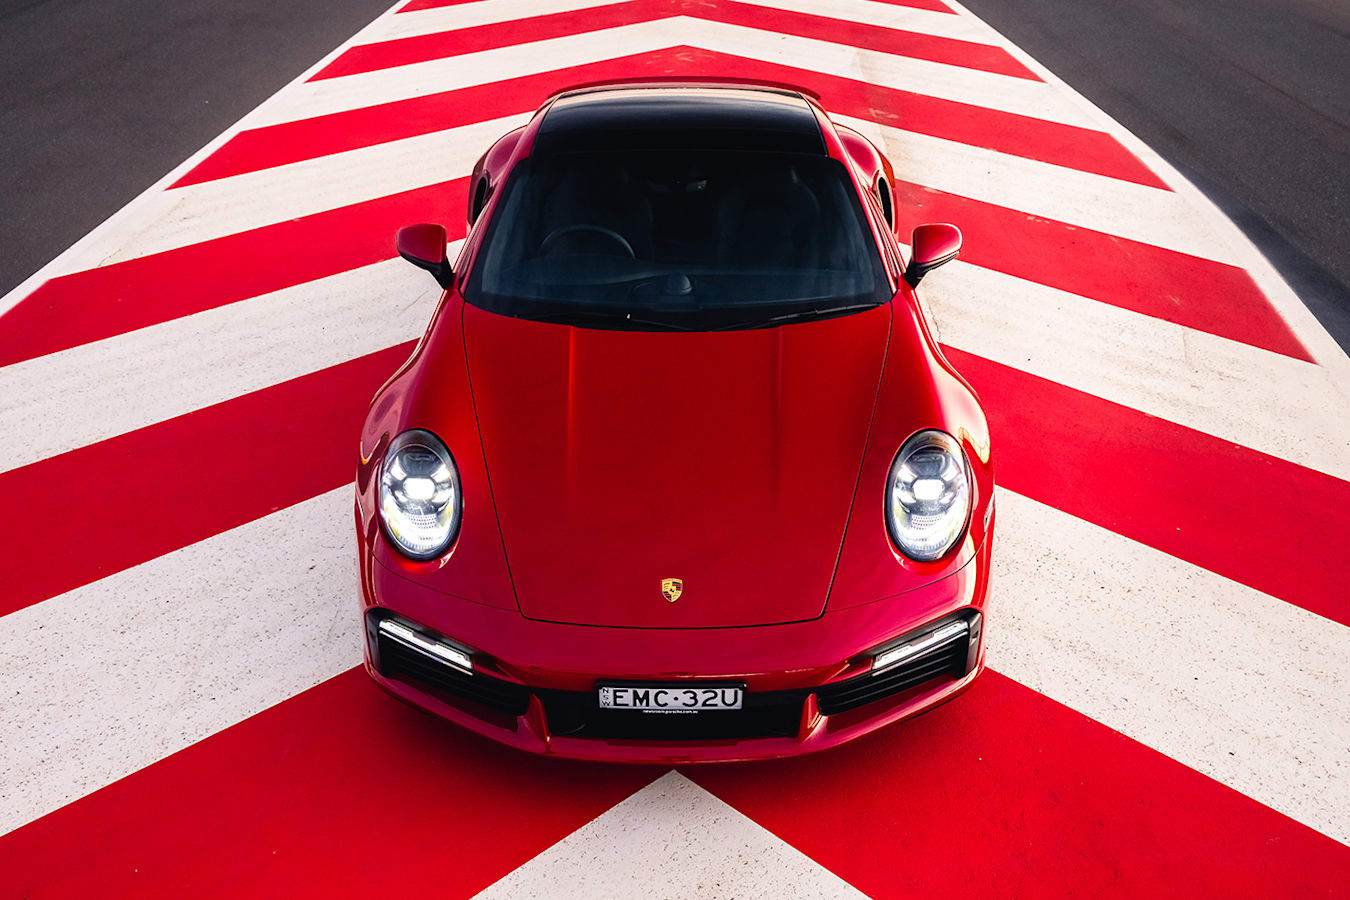 Archive Whichcar 2021 04 08 1 Porsche 911 Turbo Track Review Front High